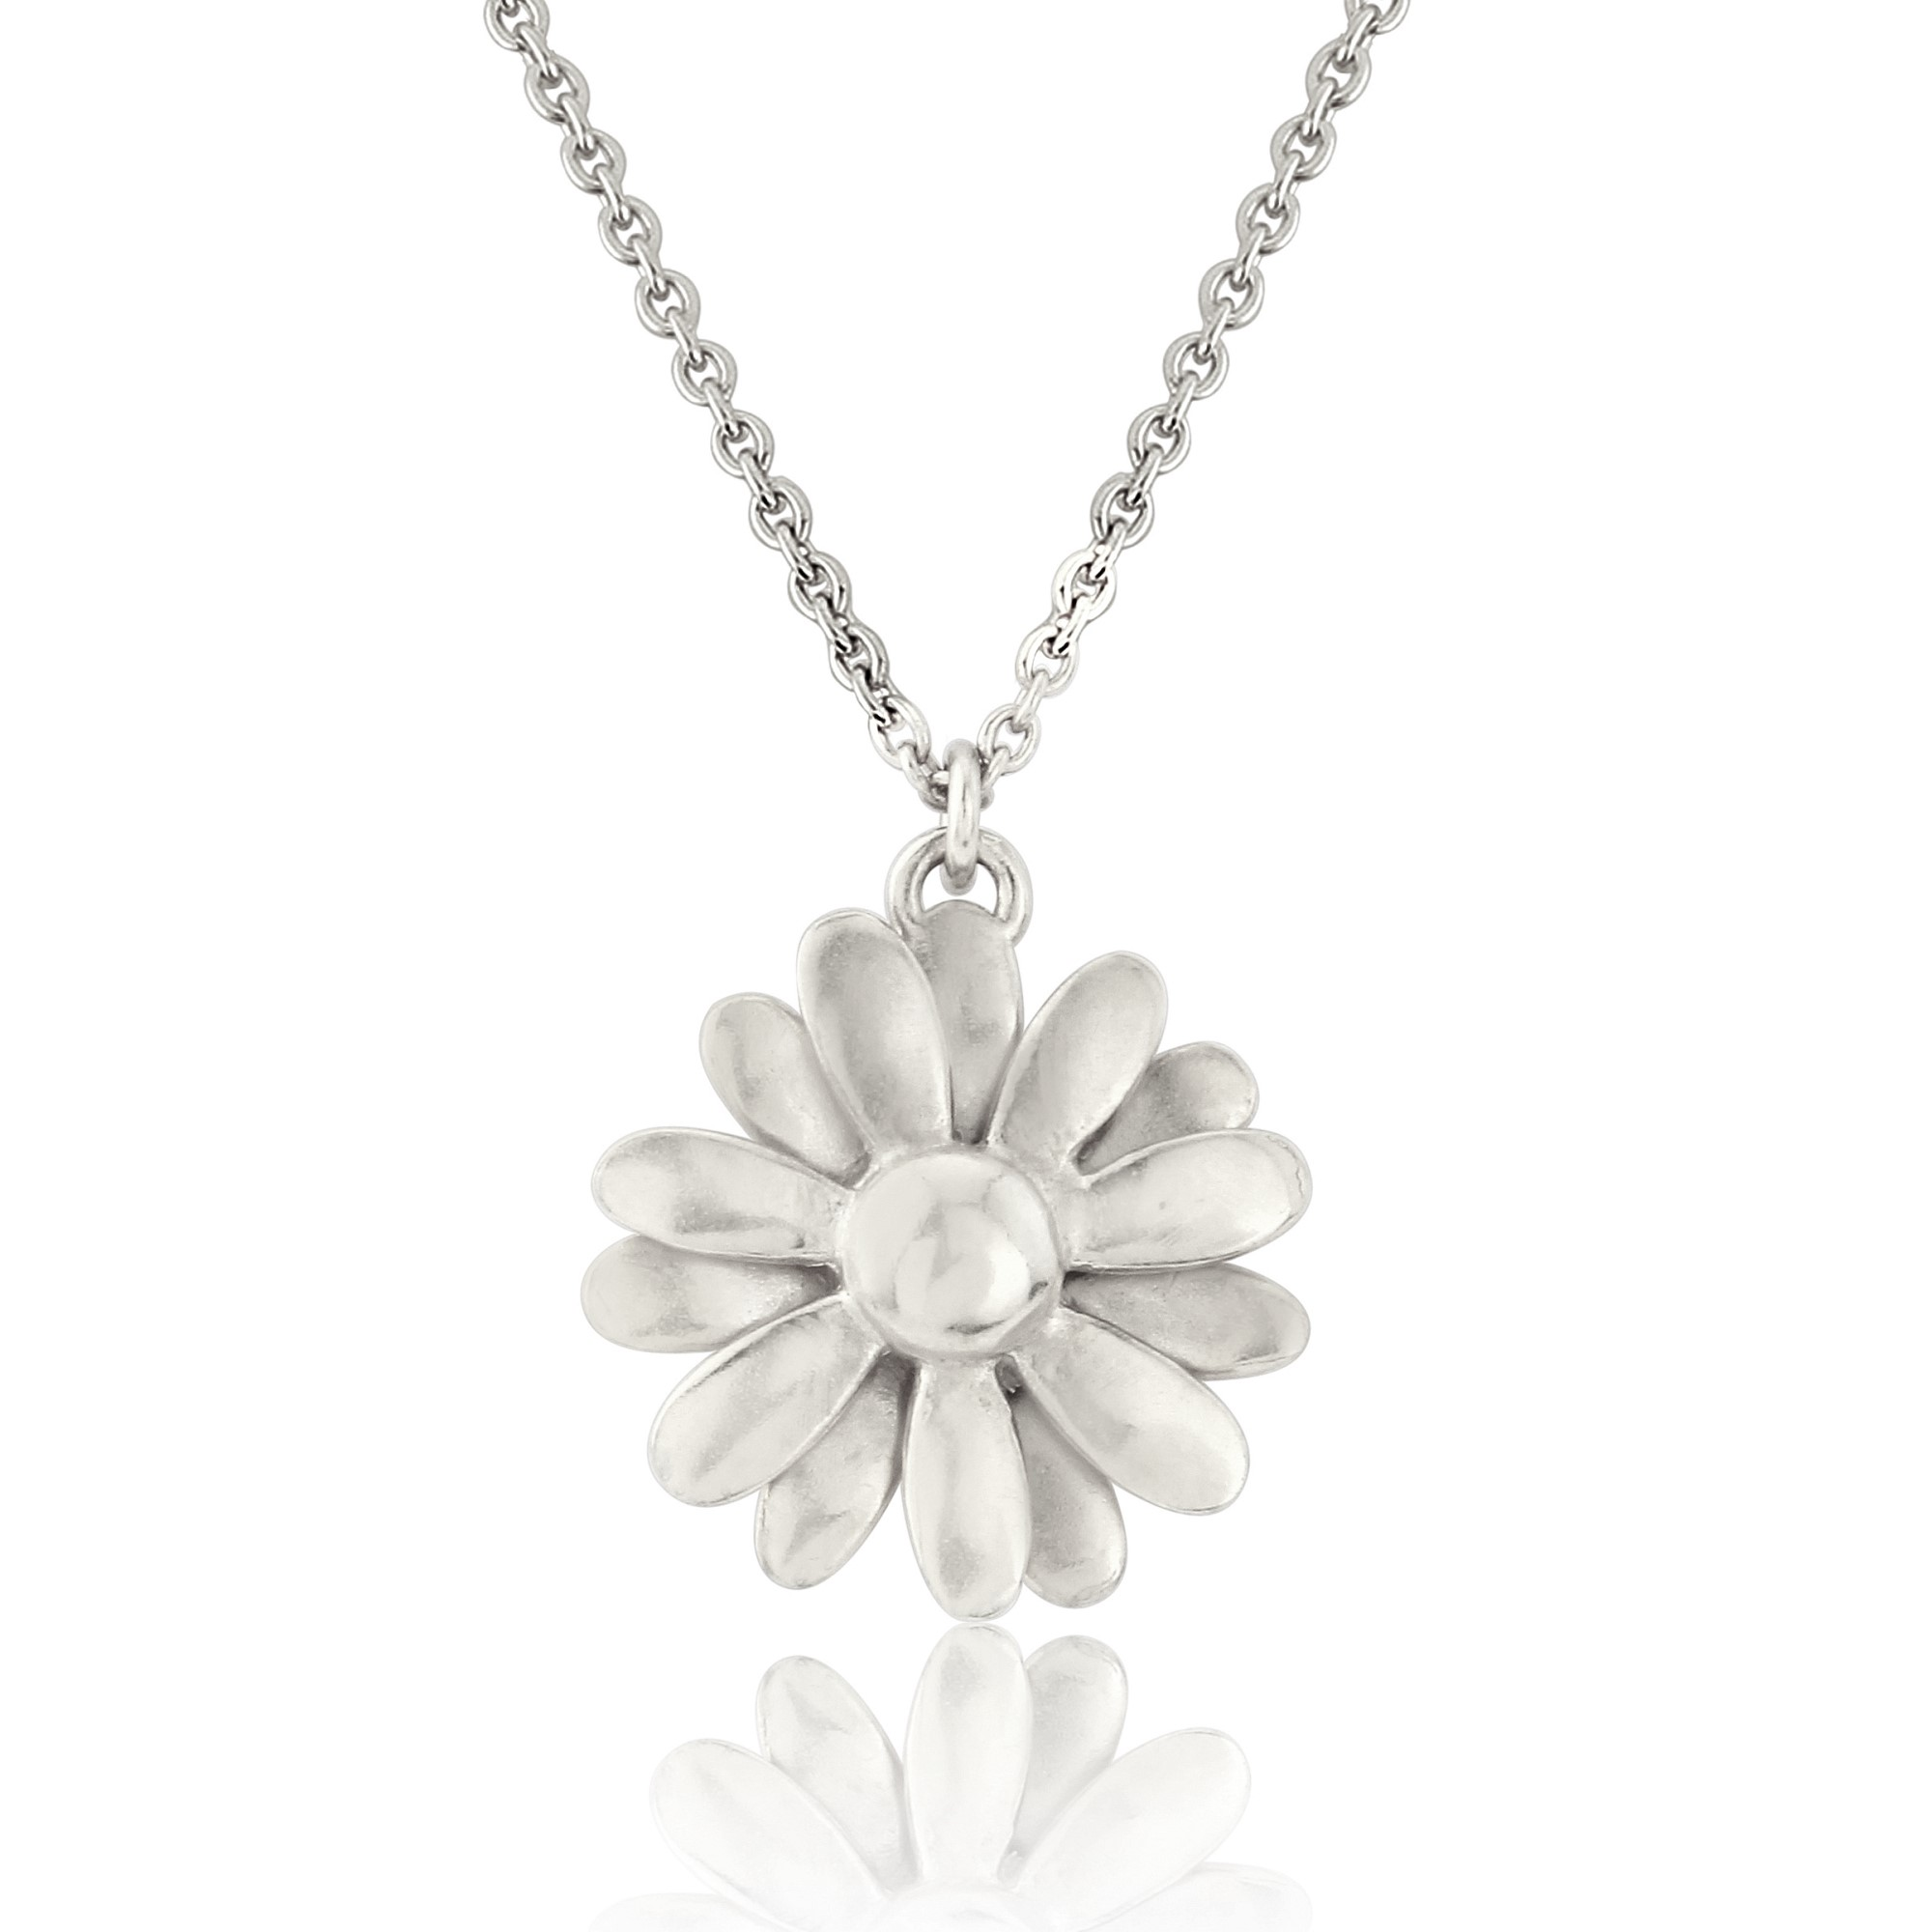 ed gold daisy wid fmt collections beaded diamond g in key m hei fit pendant with chain a rose tiffany on id constrain keys